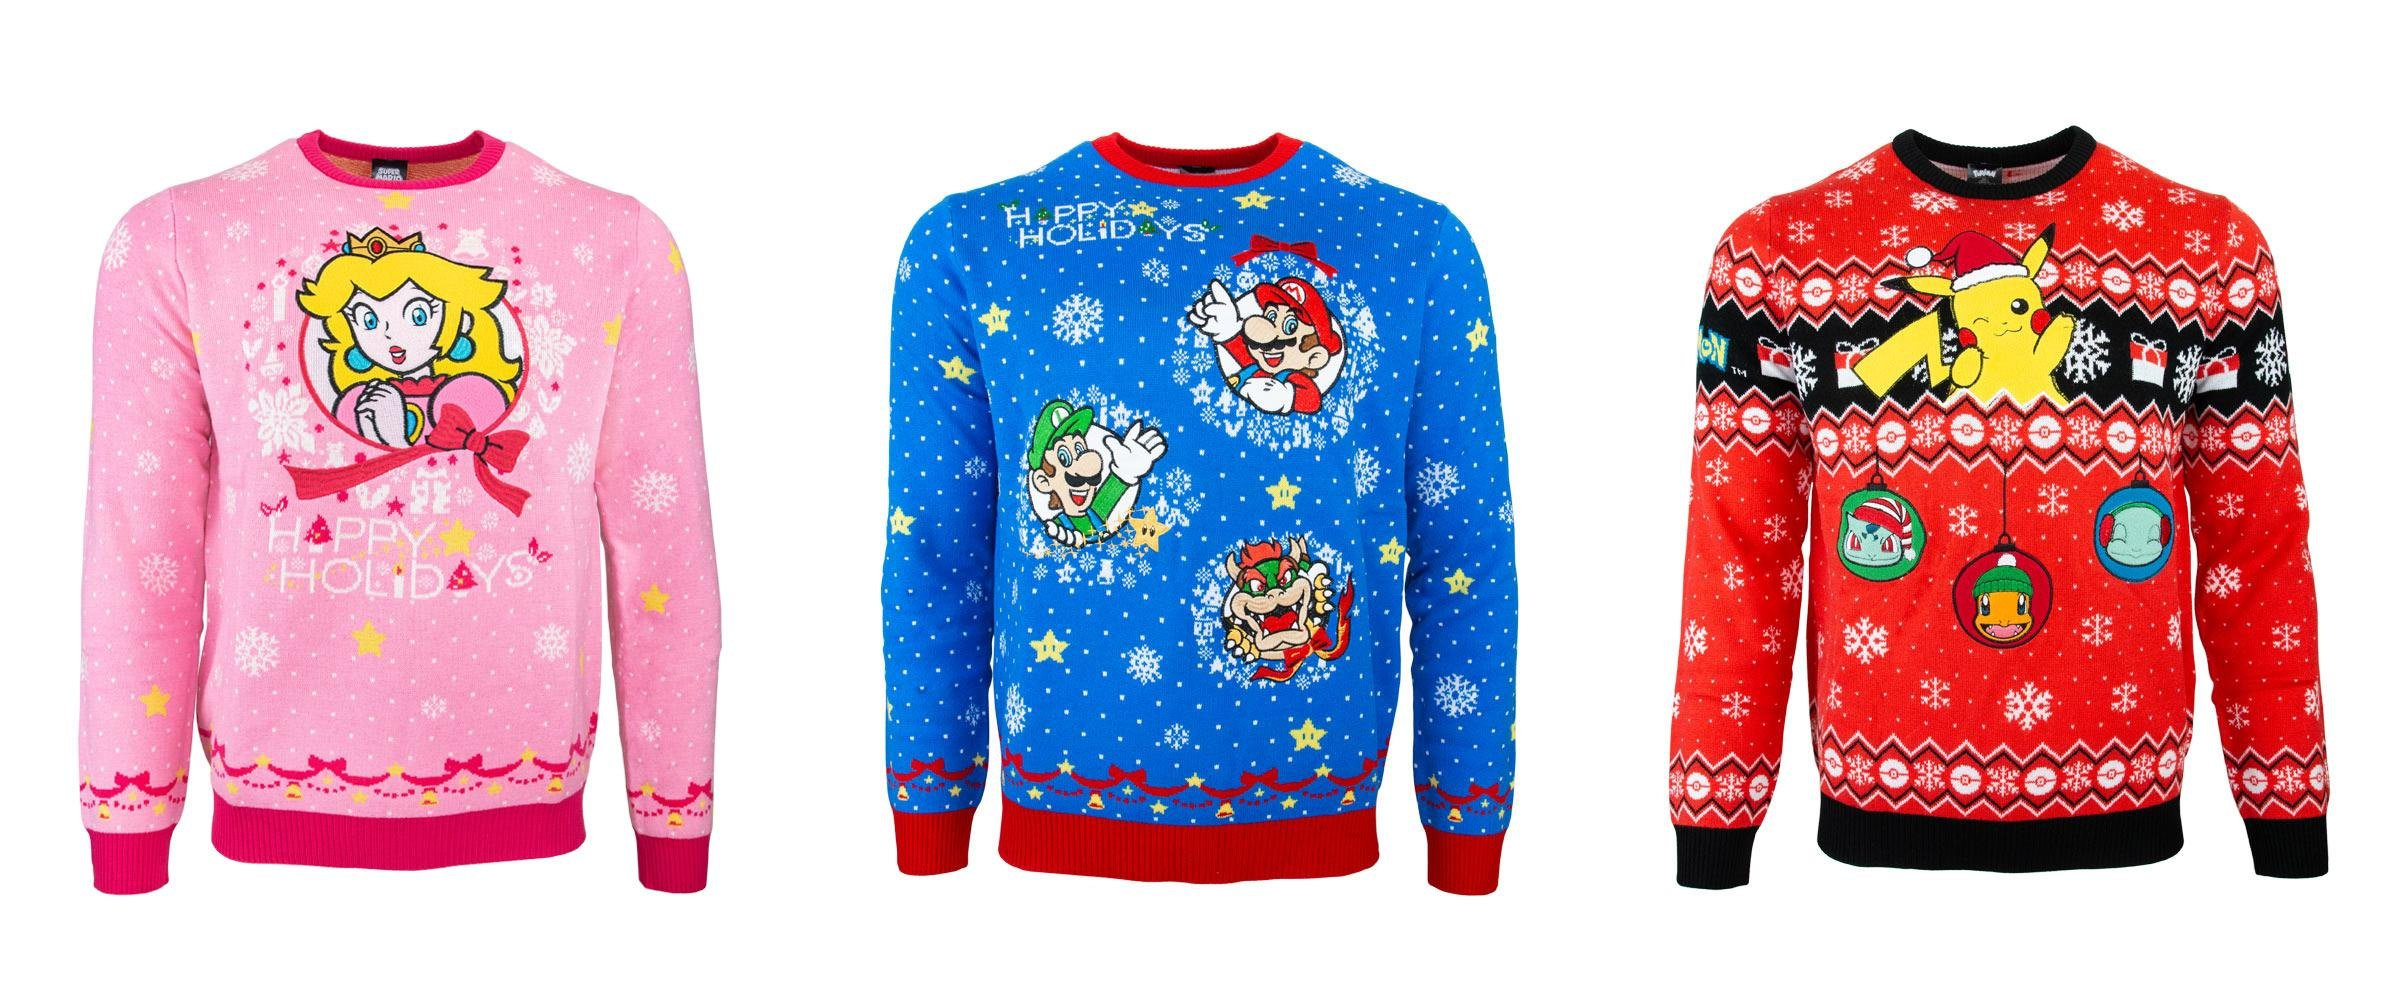 There are three official Nintendo ugly sweaters for the holiday 2019 season.